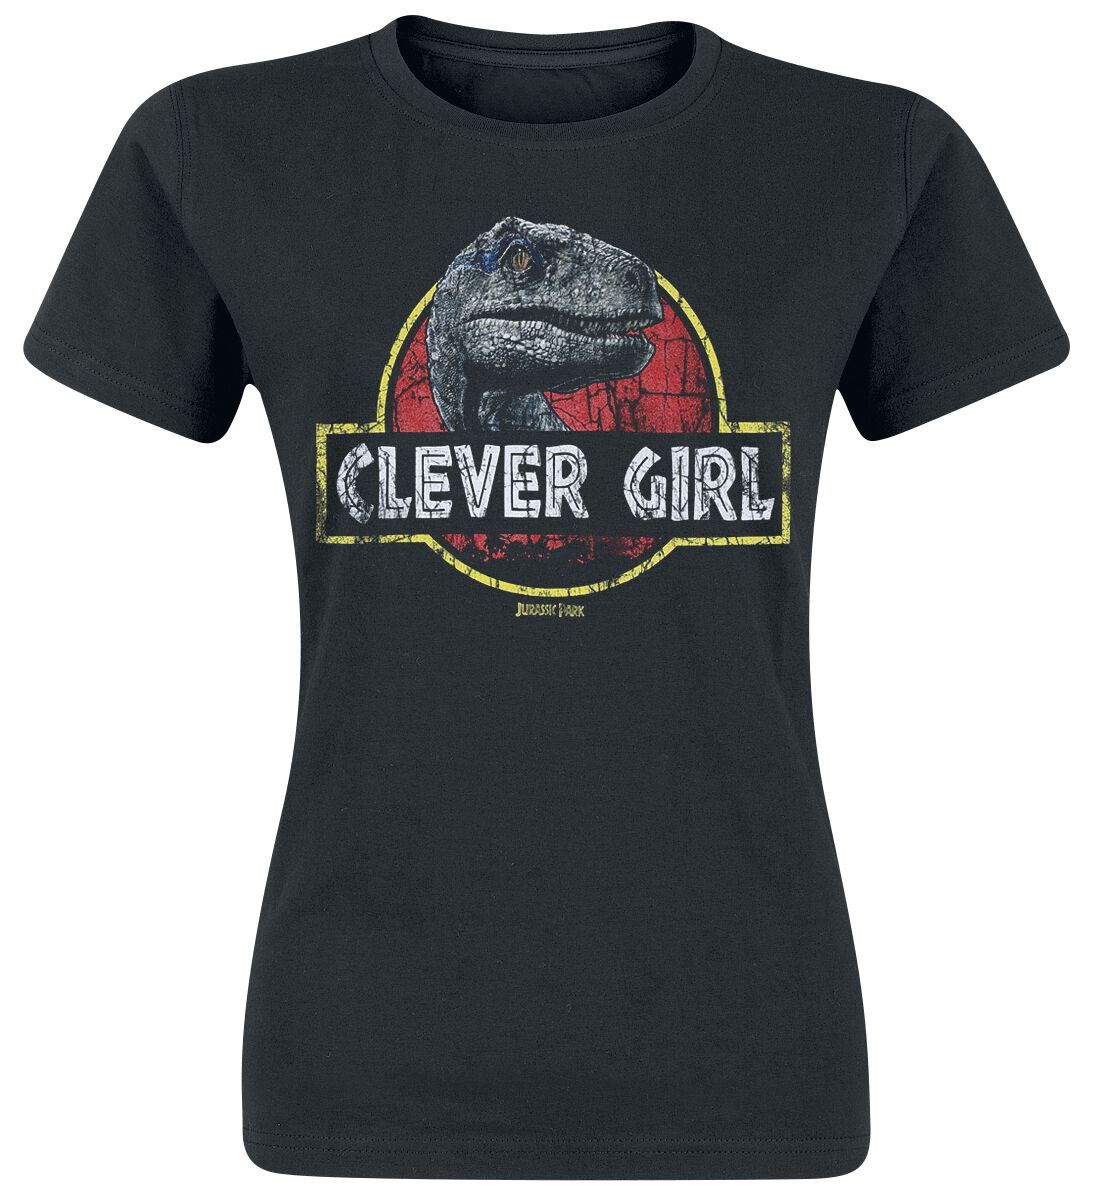 Jurassic Park Clever Girl powered by EMP